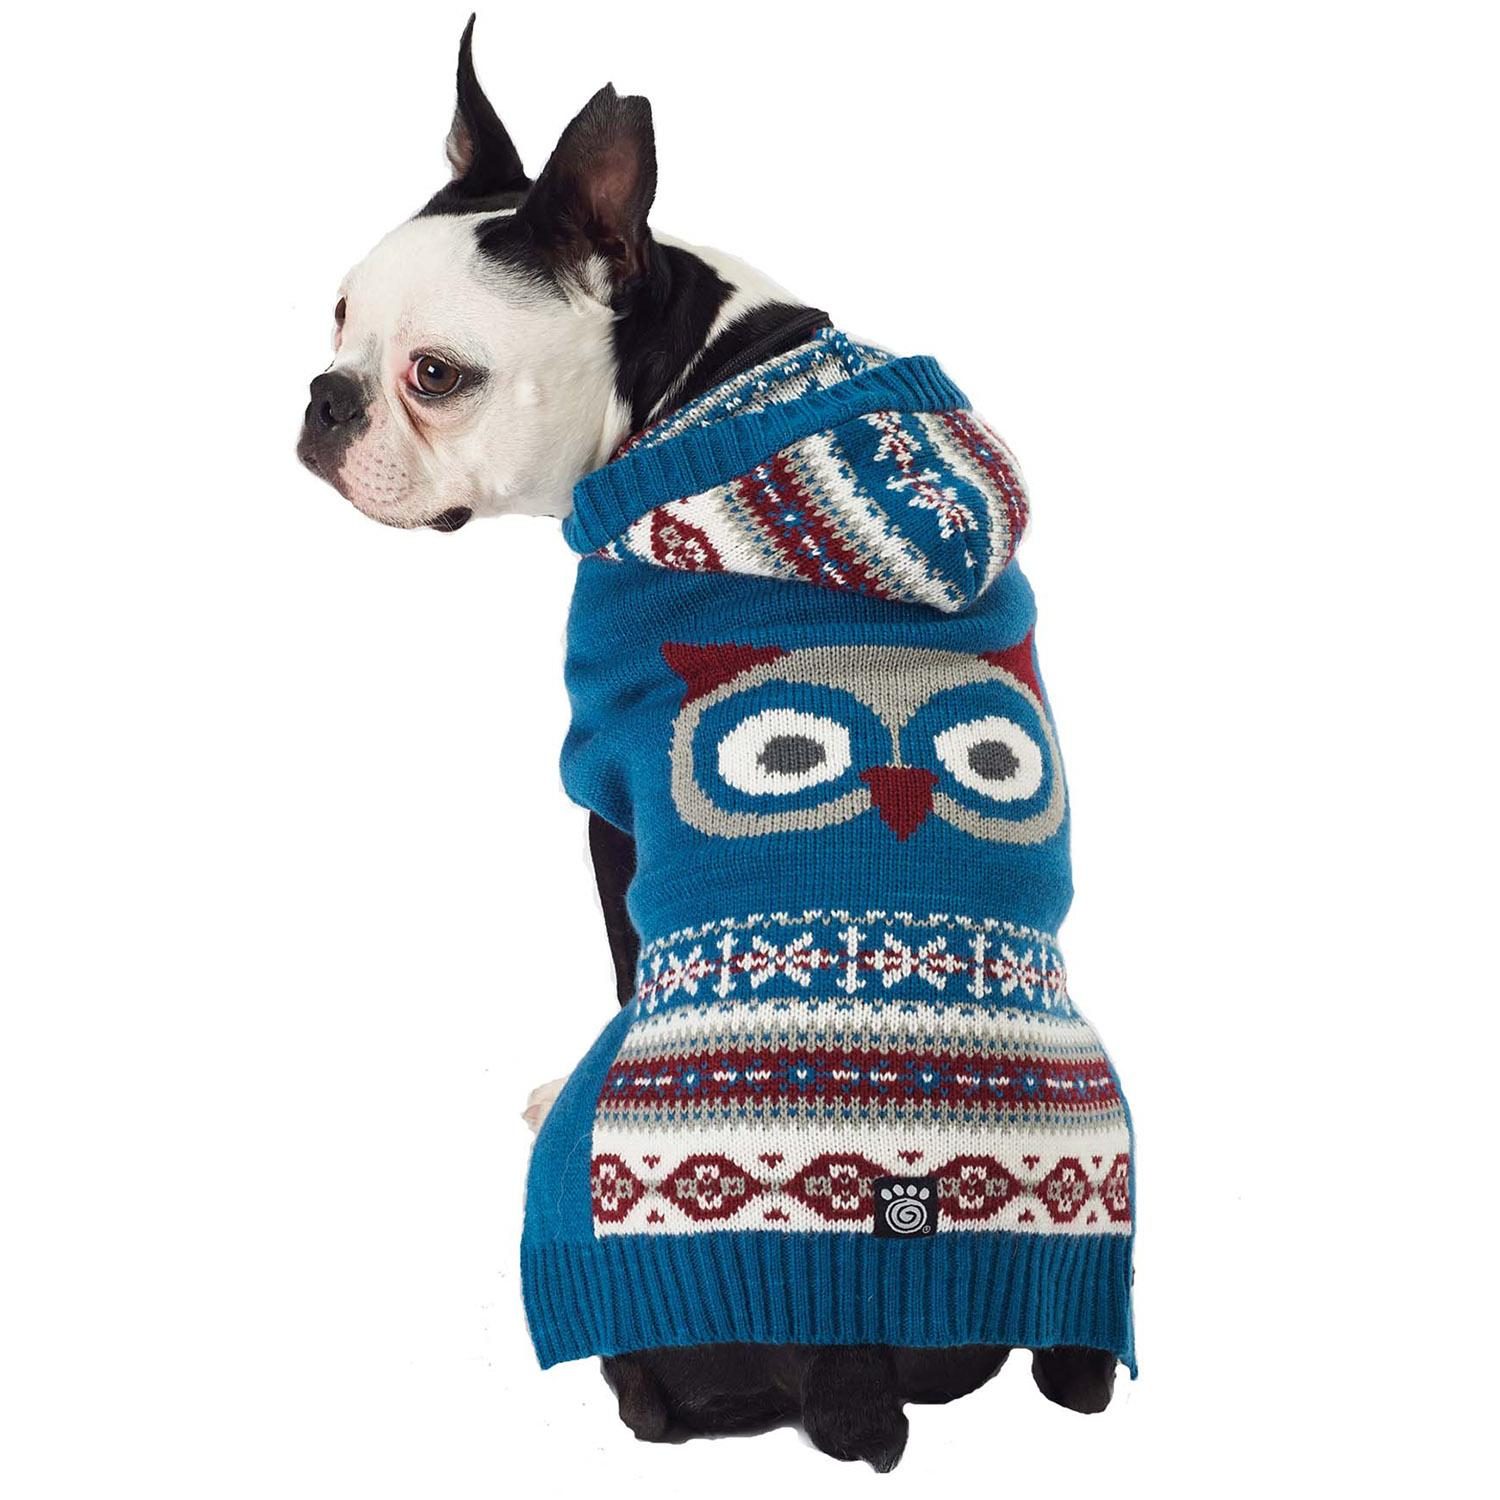 Roo's Hooded Woodland Dog Sweater - Owl